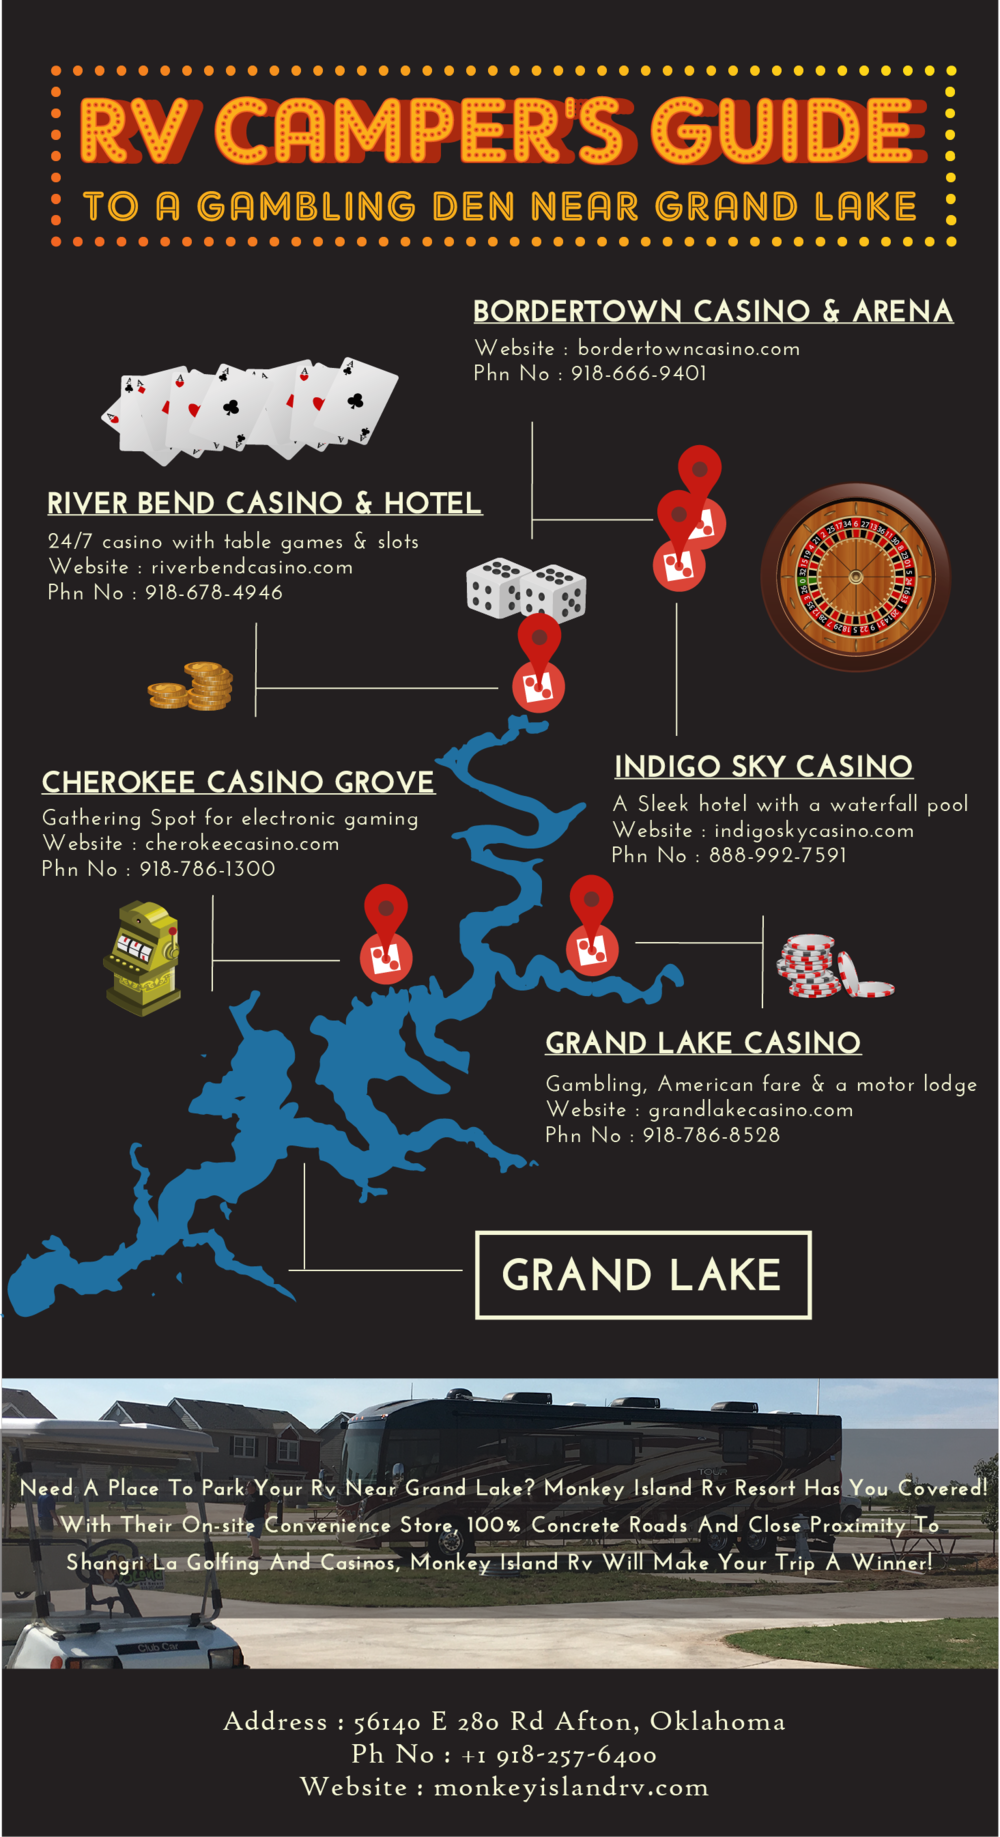 RV-Campers-Guide-To-Gambling-Den-Near-Grand-Lake.png